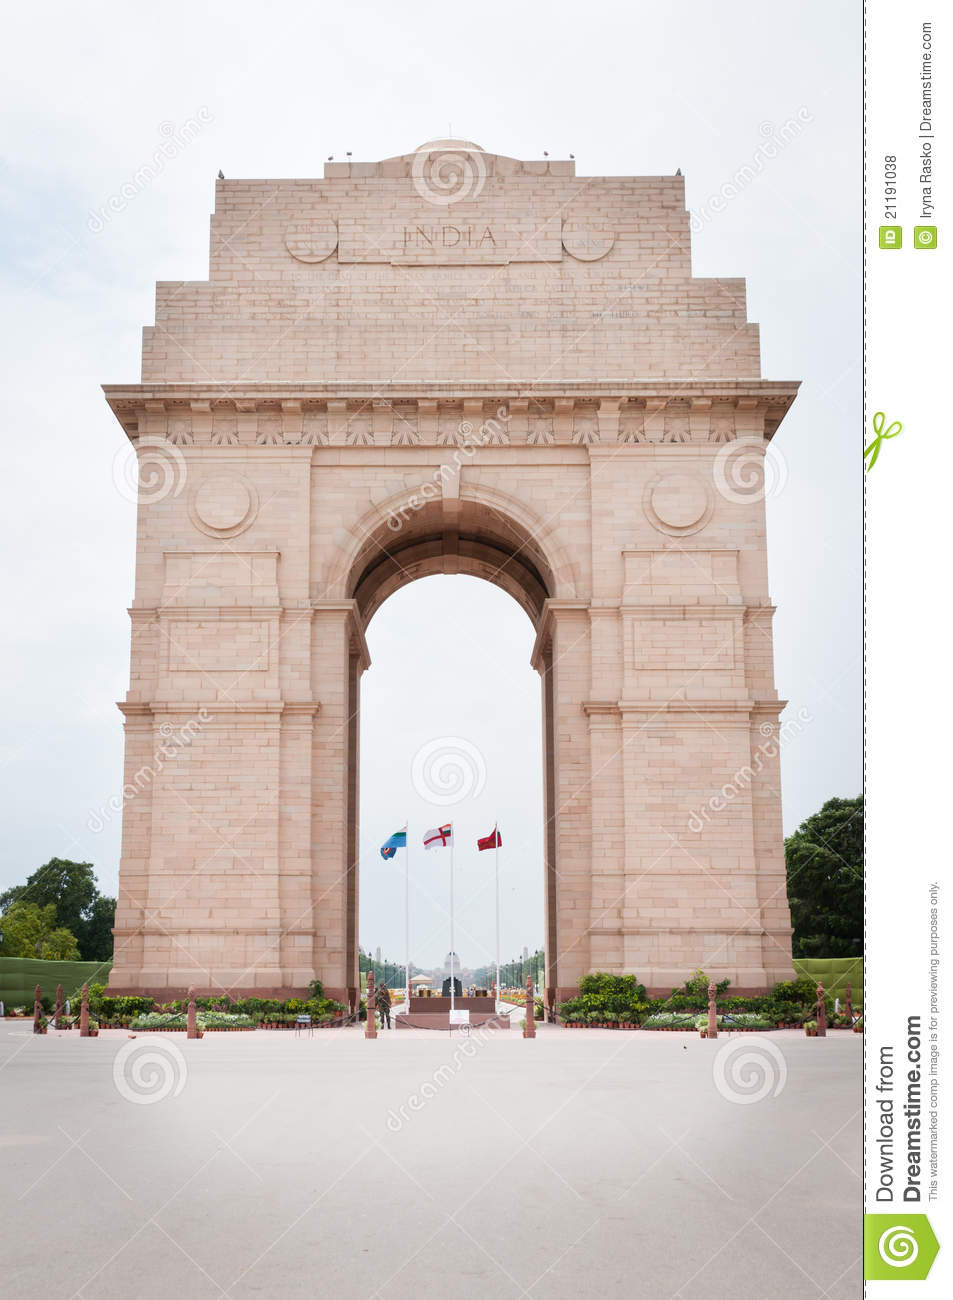 India Gate In New Dalhi Stock Photo Image Of Travel 21191038